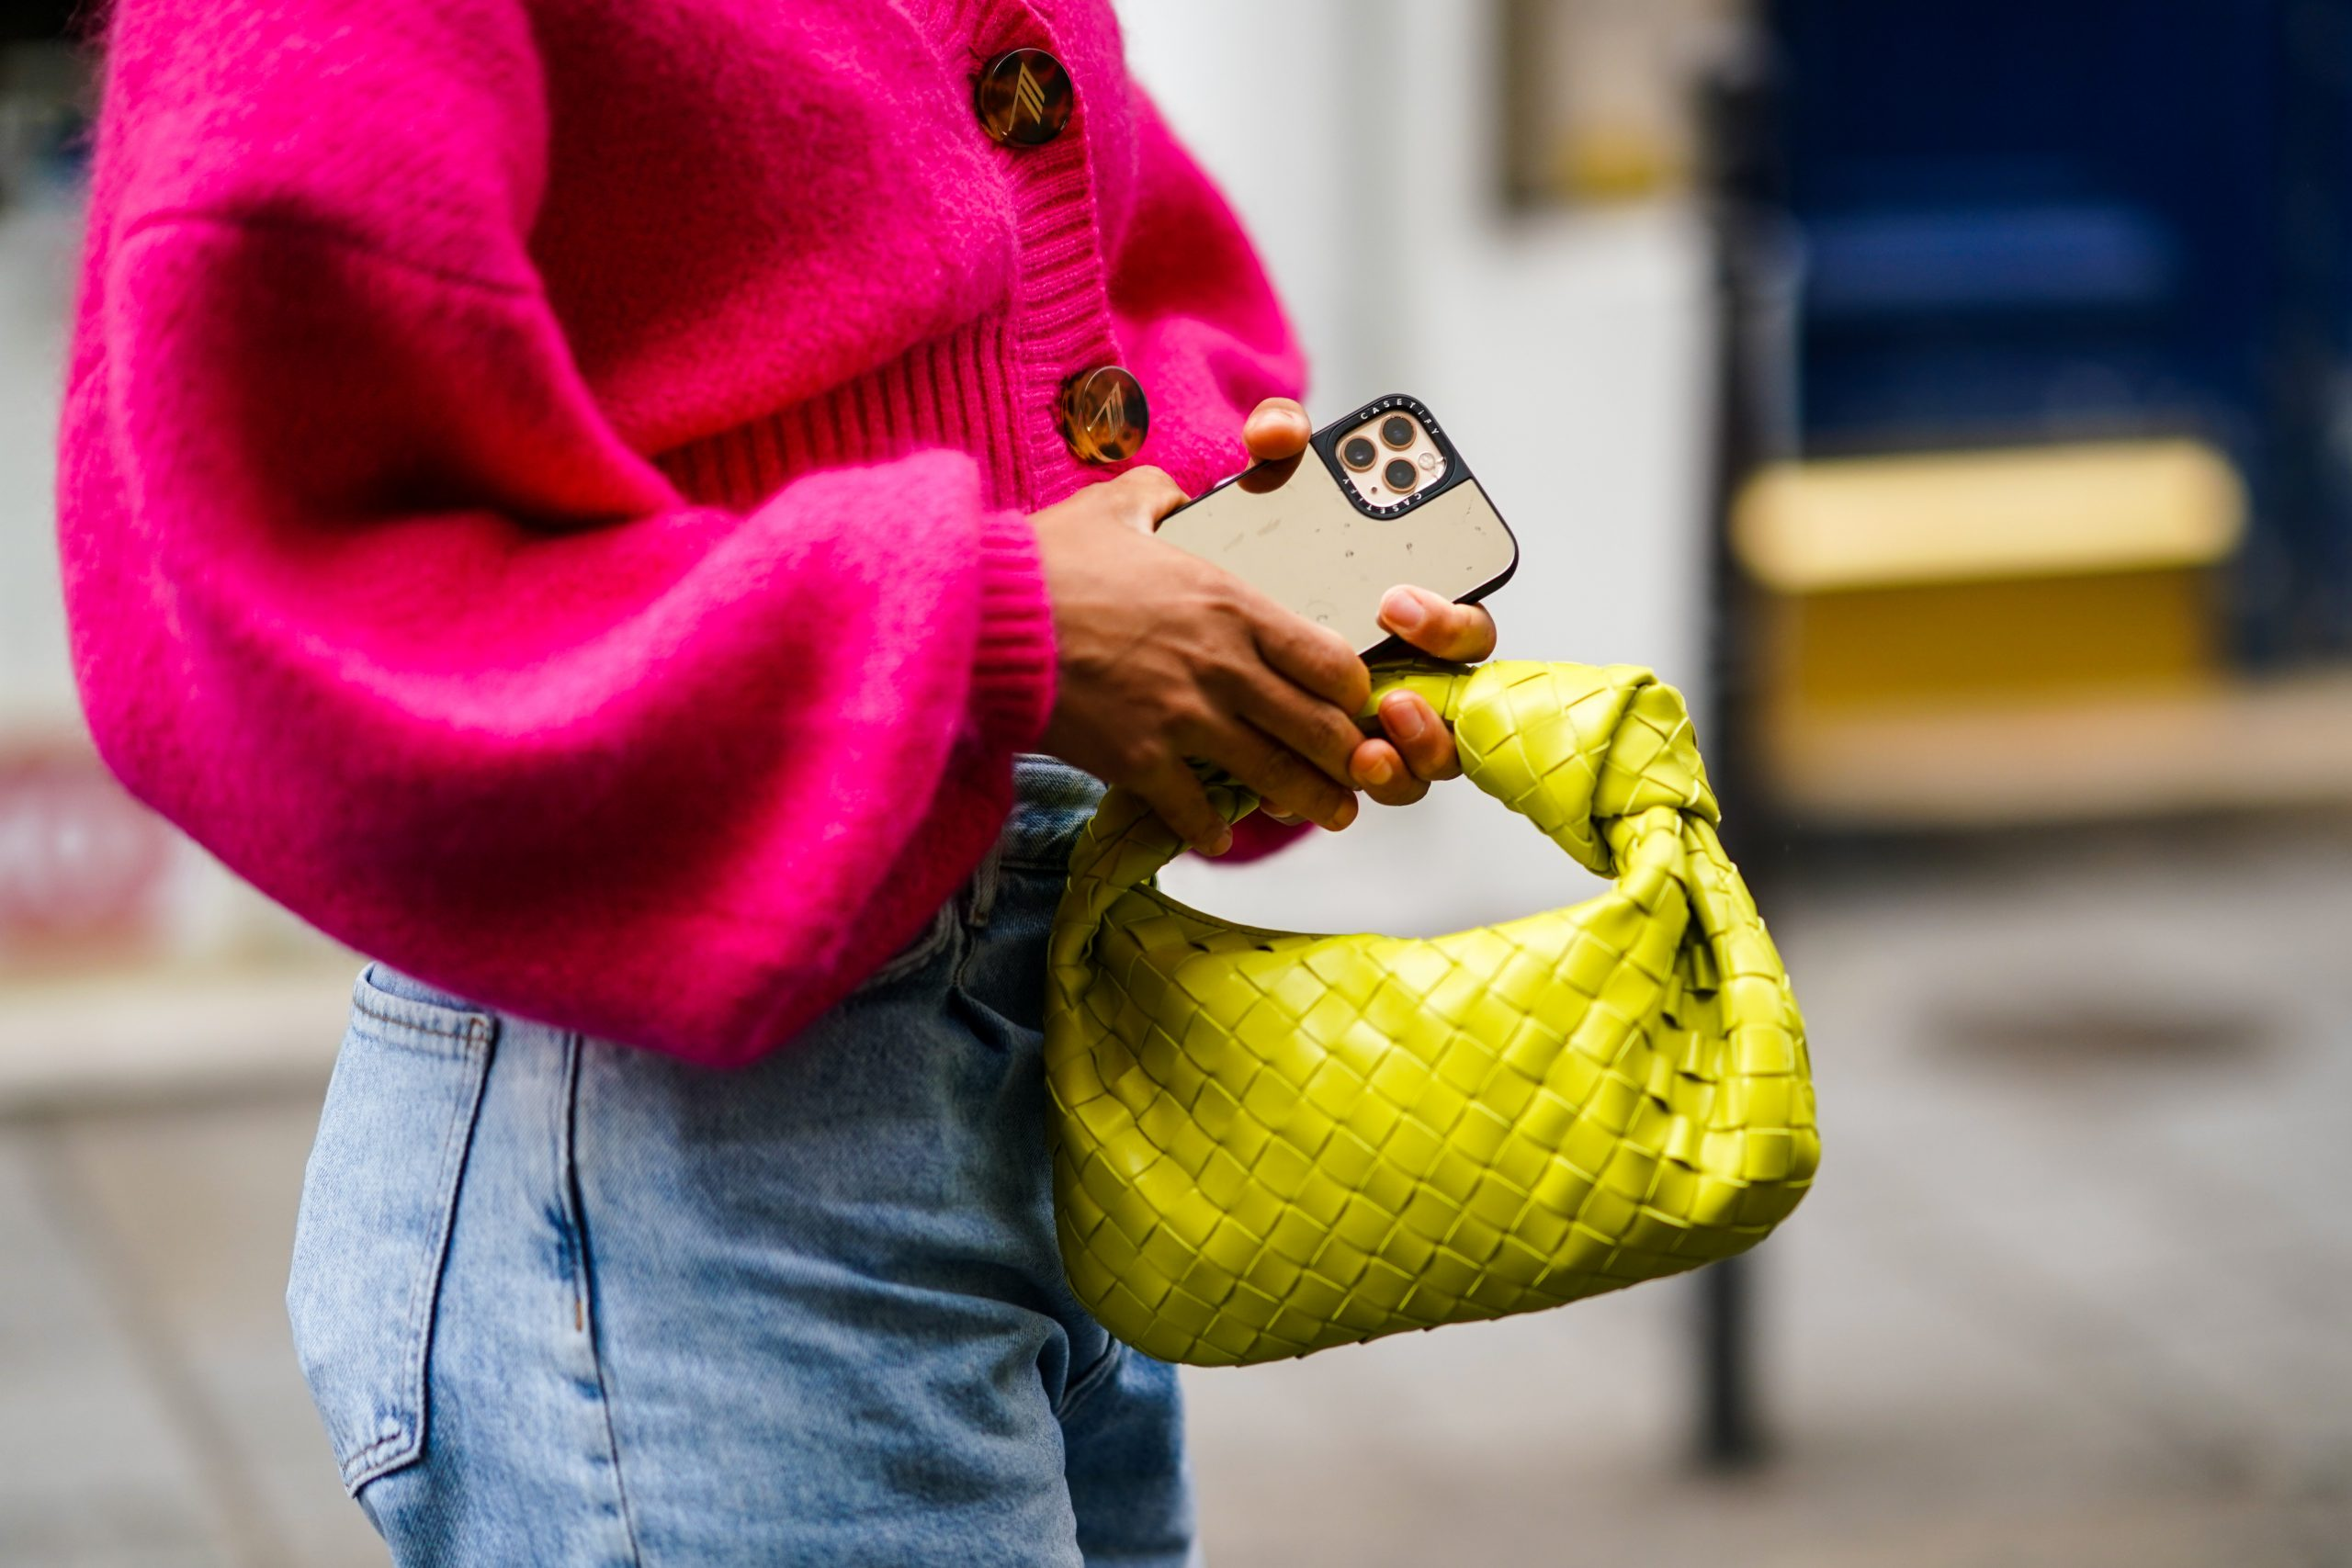 PARIS, FRANCE - OCTOBER 04: Ellie Delphine wears a neon pink wool cropped cardigan, blue denim ripped jeans, a yellow woven leather Bottega Veneta bag, outside Paco Rabanne, during Paris Fashion Week - Womenswear Spring Summer 2021, on October 04, 2020 in Paris, France. (Photo by Edward Berthelot/Getty Images)